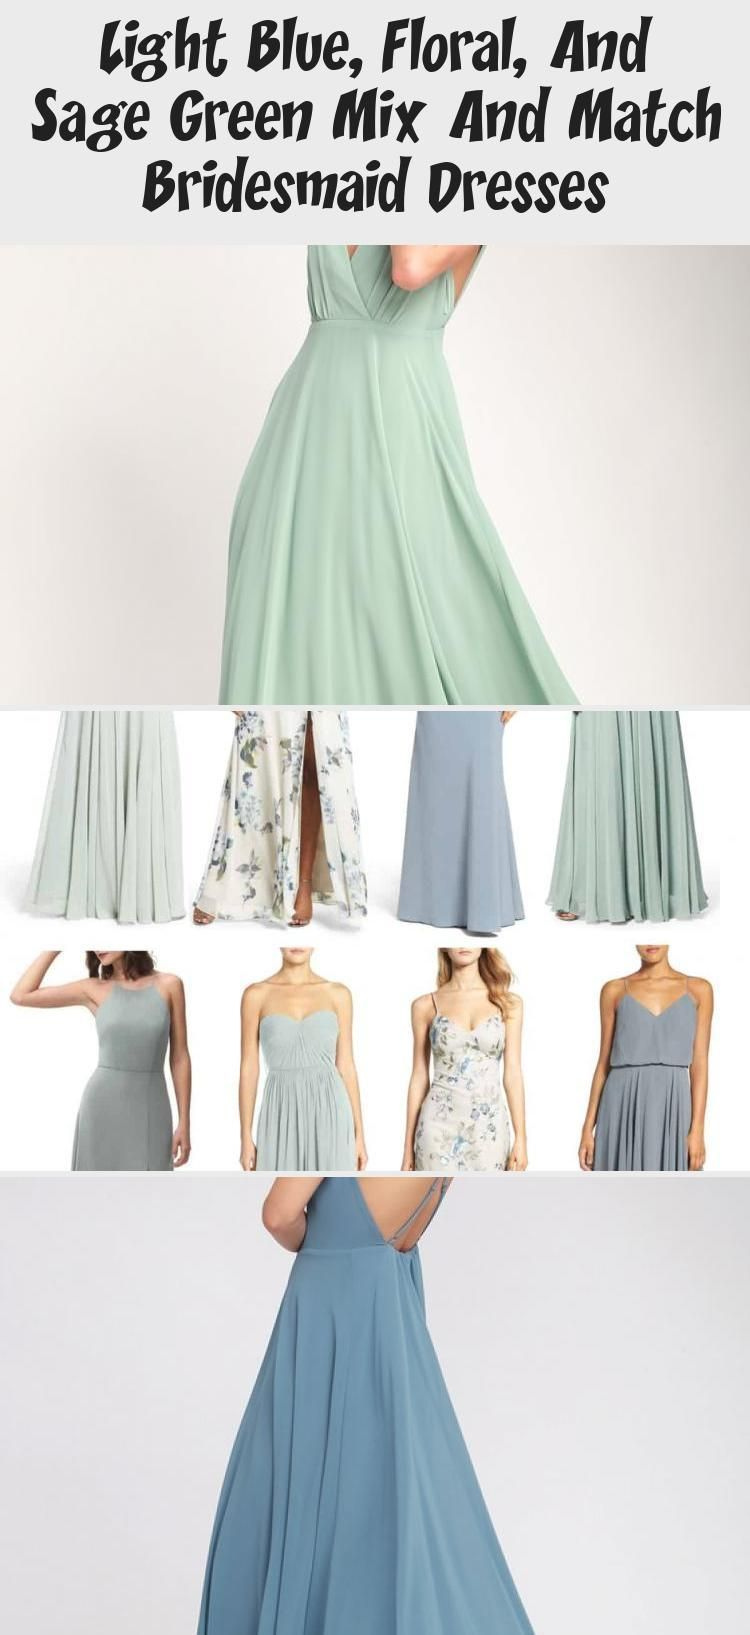 Light Blue Floral And Sage Green Mix And Match Bridesmaid